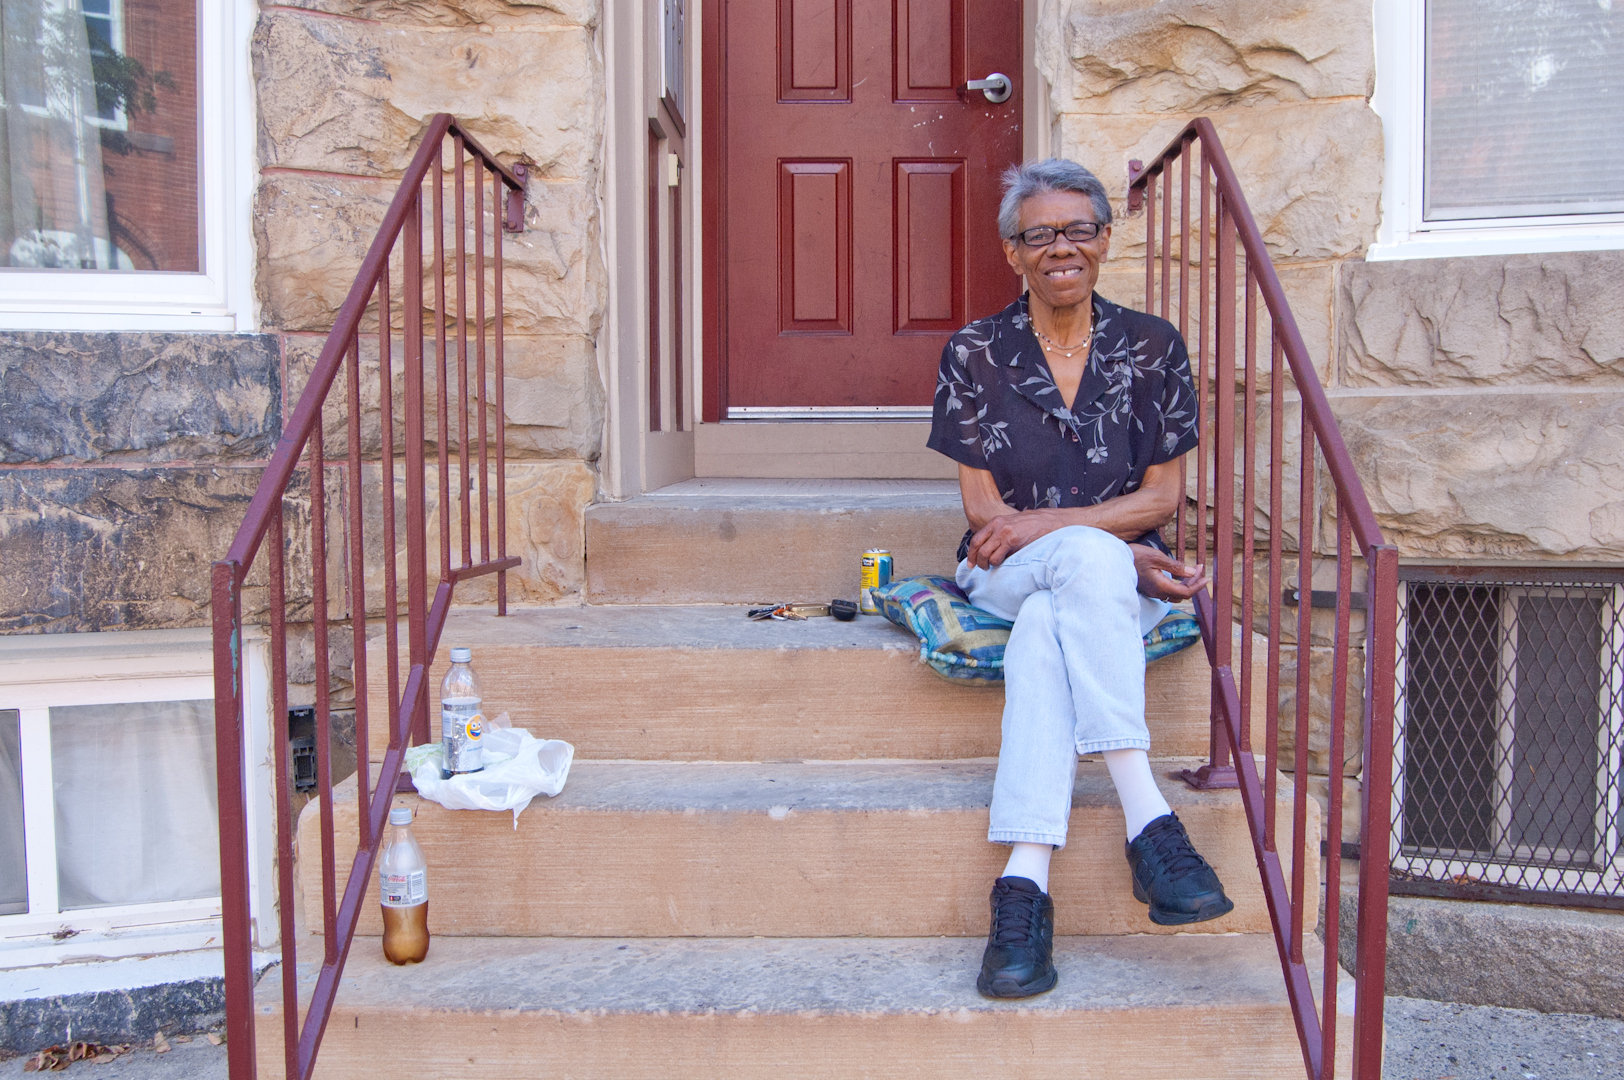 """""""My name is Shirley Dendy and I'm at Guilford Avenue for 16 years. It's a great neighborhood and I raise my grandsons and great-grandsons here. It's a very convenient and I work right around the corner at the Greenmount Senior Center; it's a Korean Center and they are wonderful people."""""""